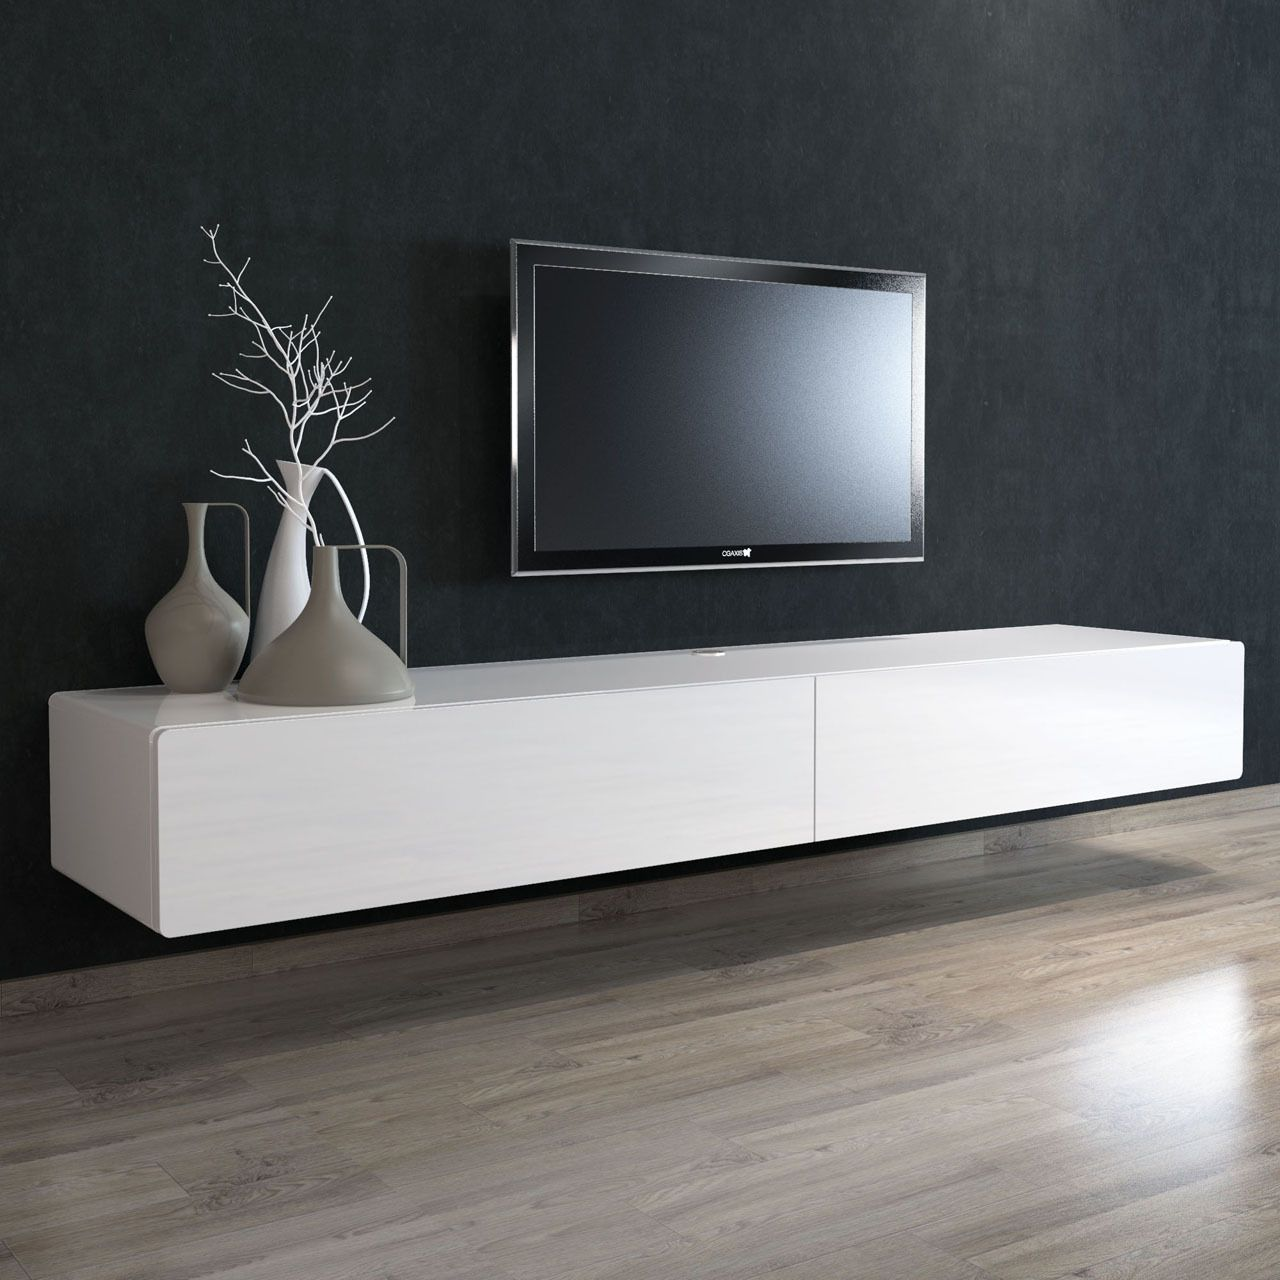 Design Floating Cabinets floating shelves entertainment center built in cabinets cityside furniture brings you a range of premium units and for less we